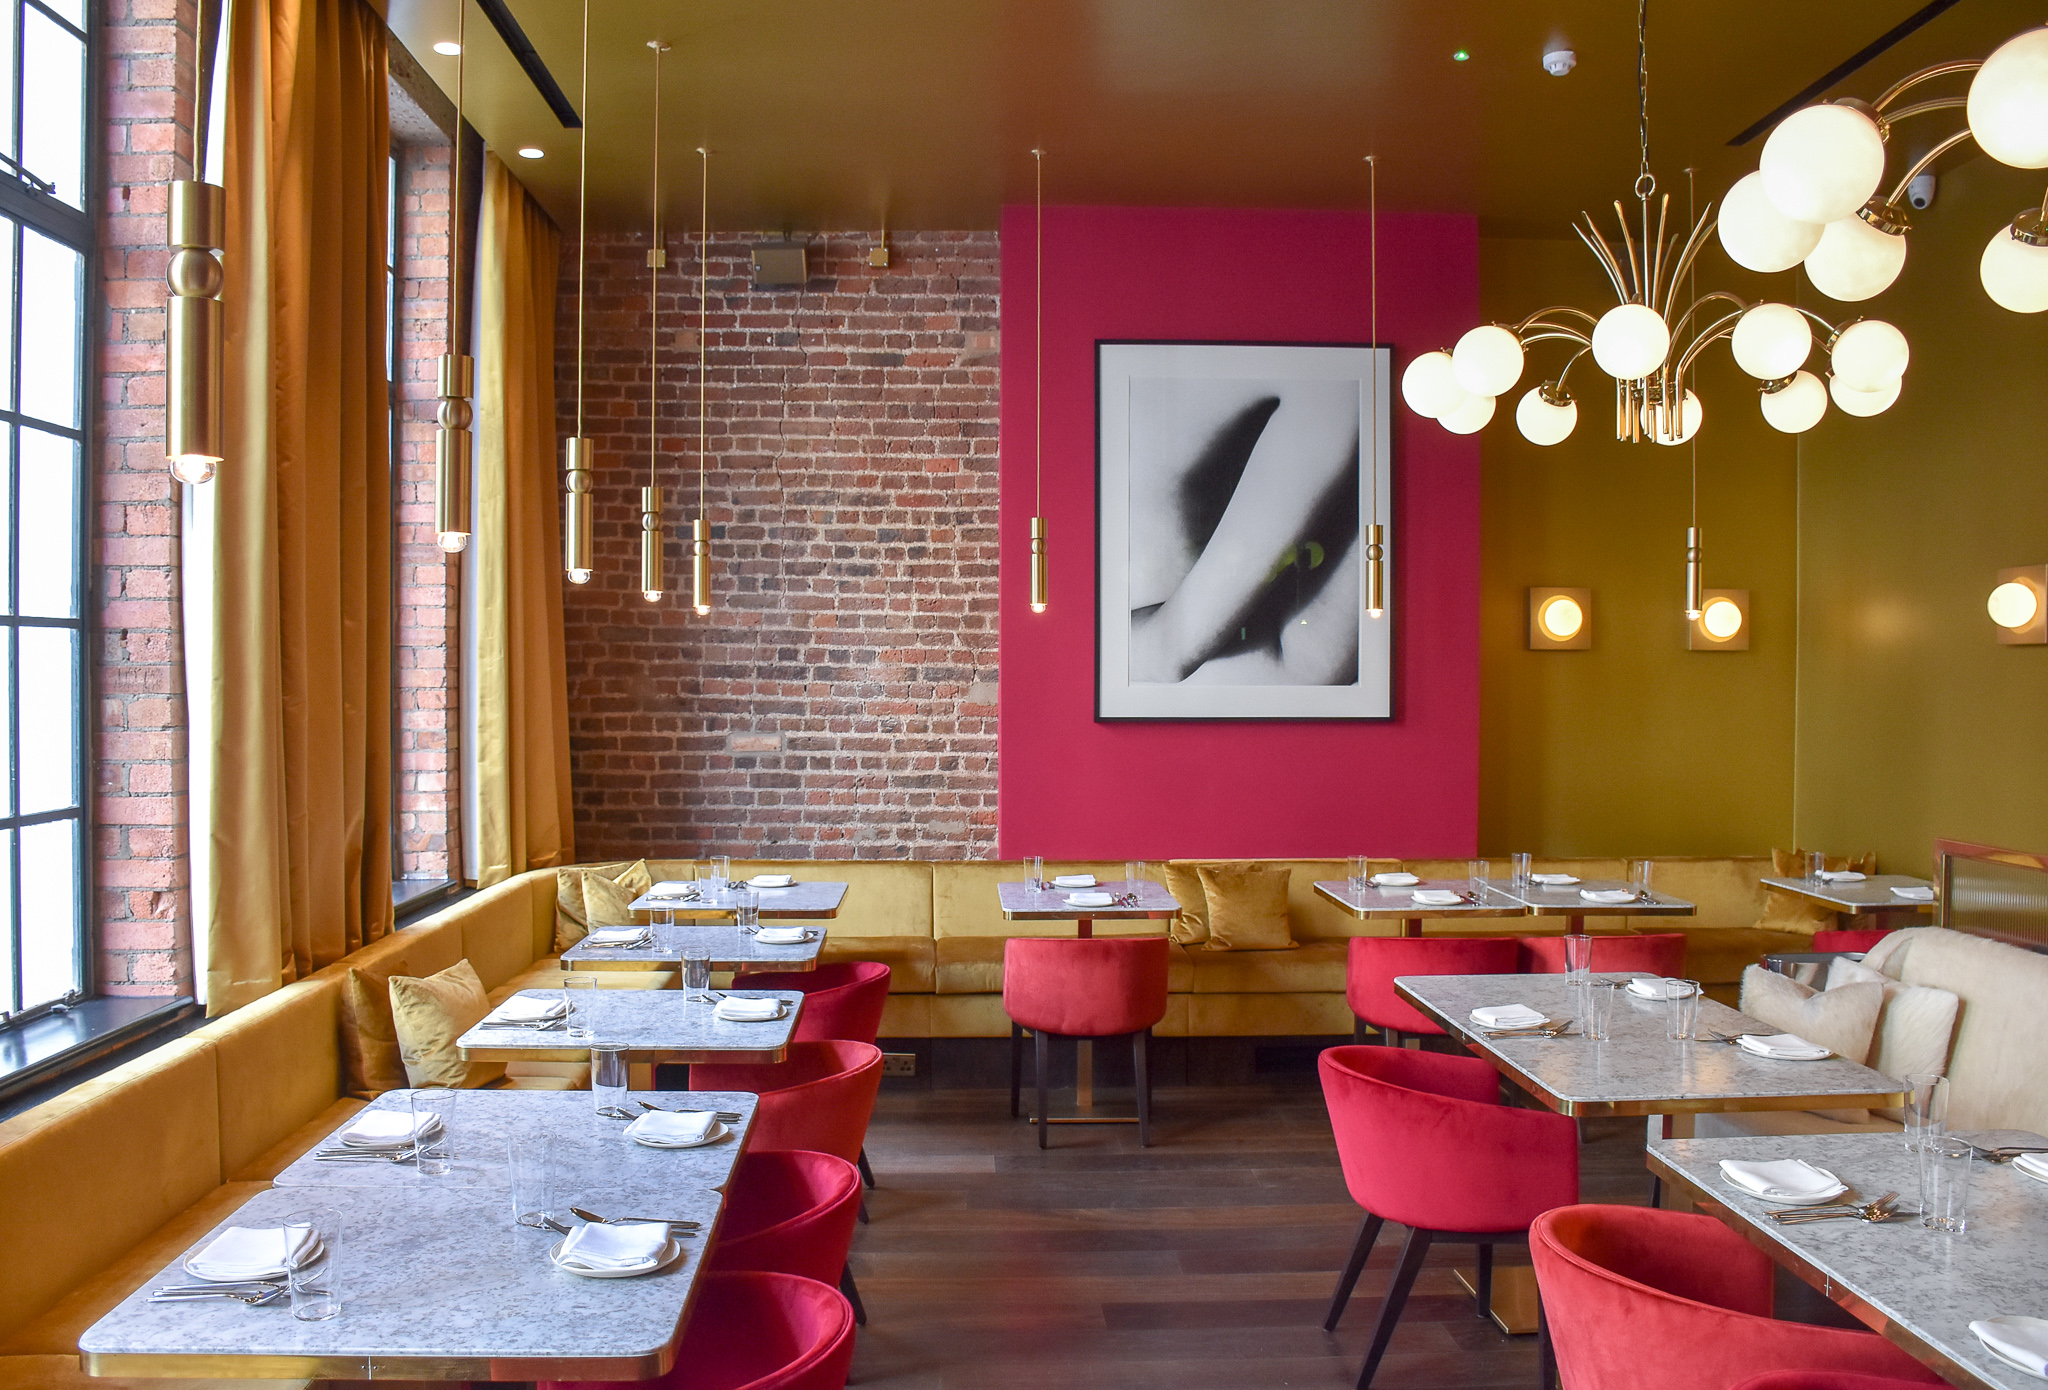 Gazelle restaurant review modern experimental fine